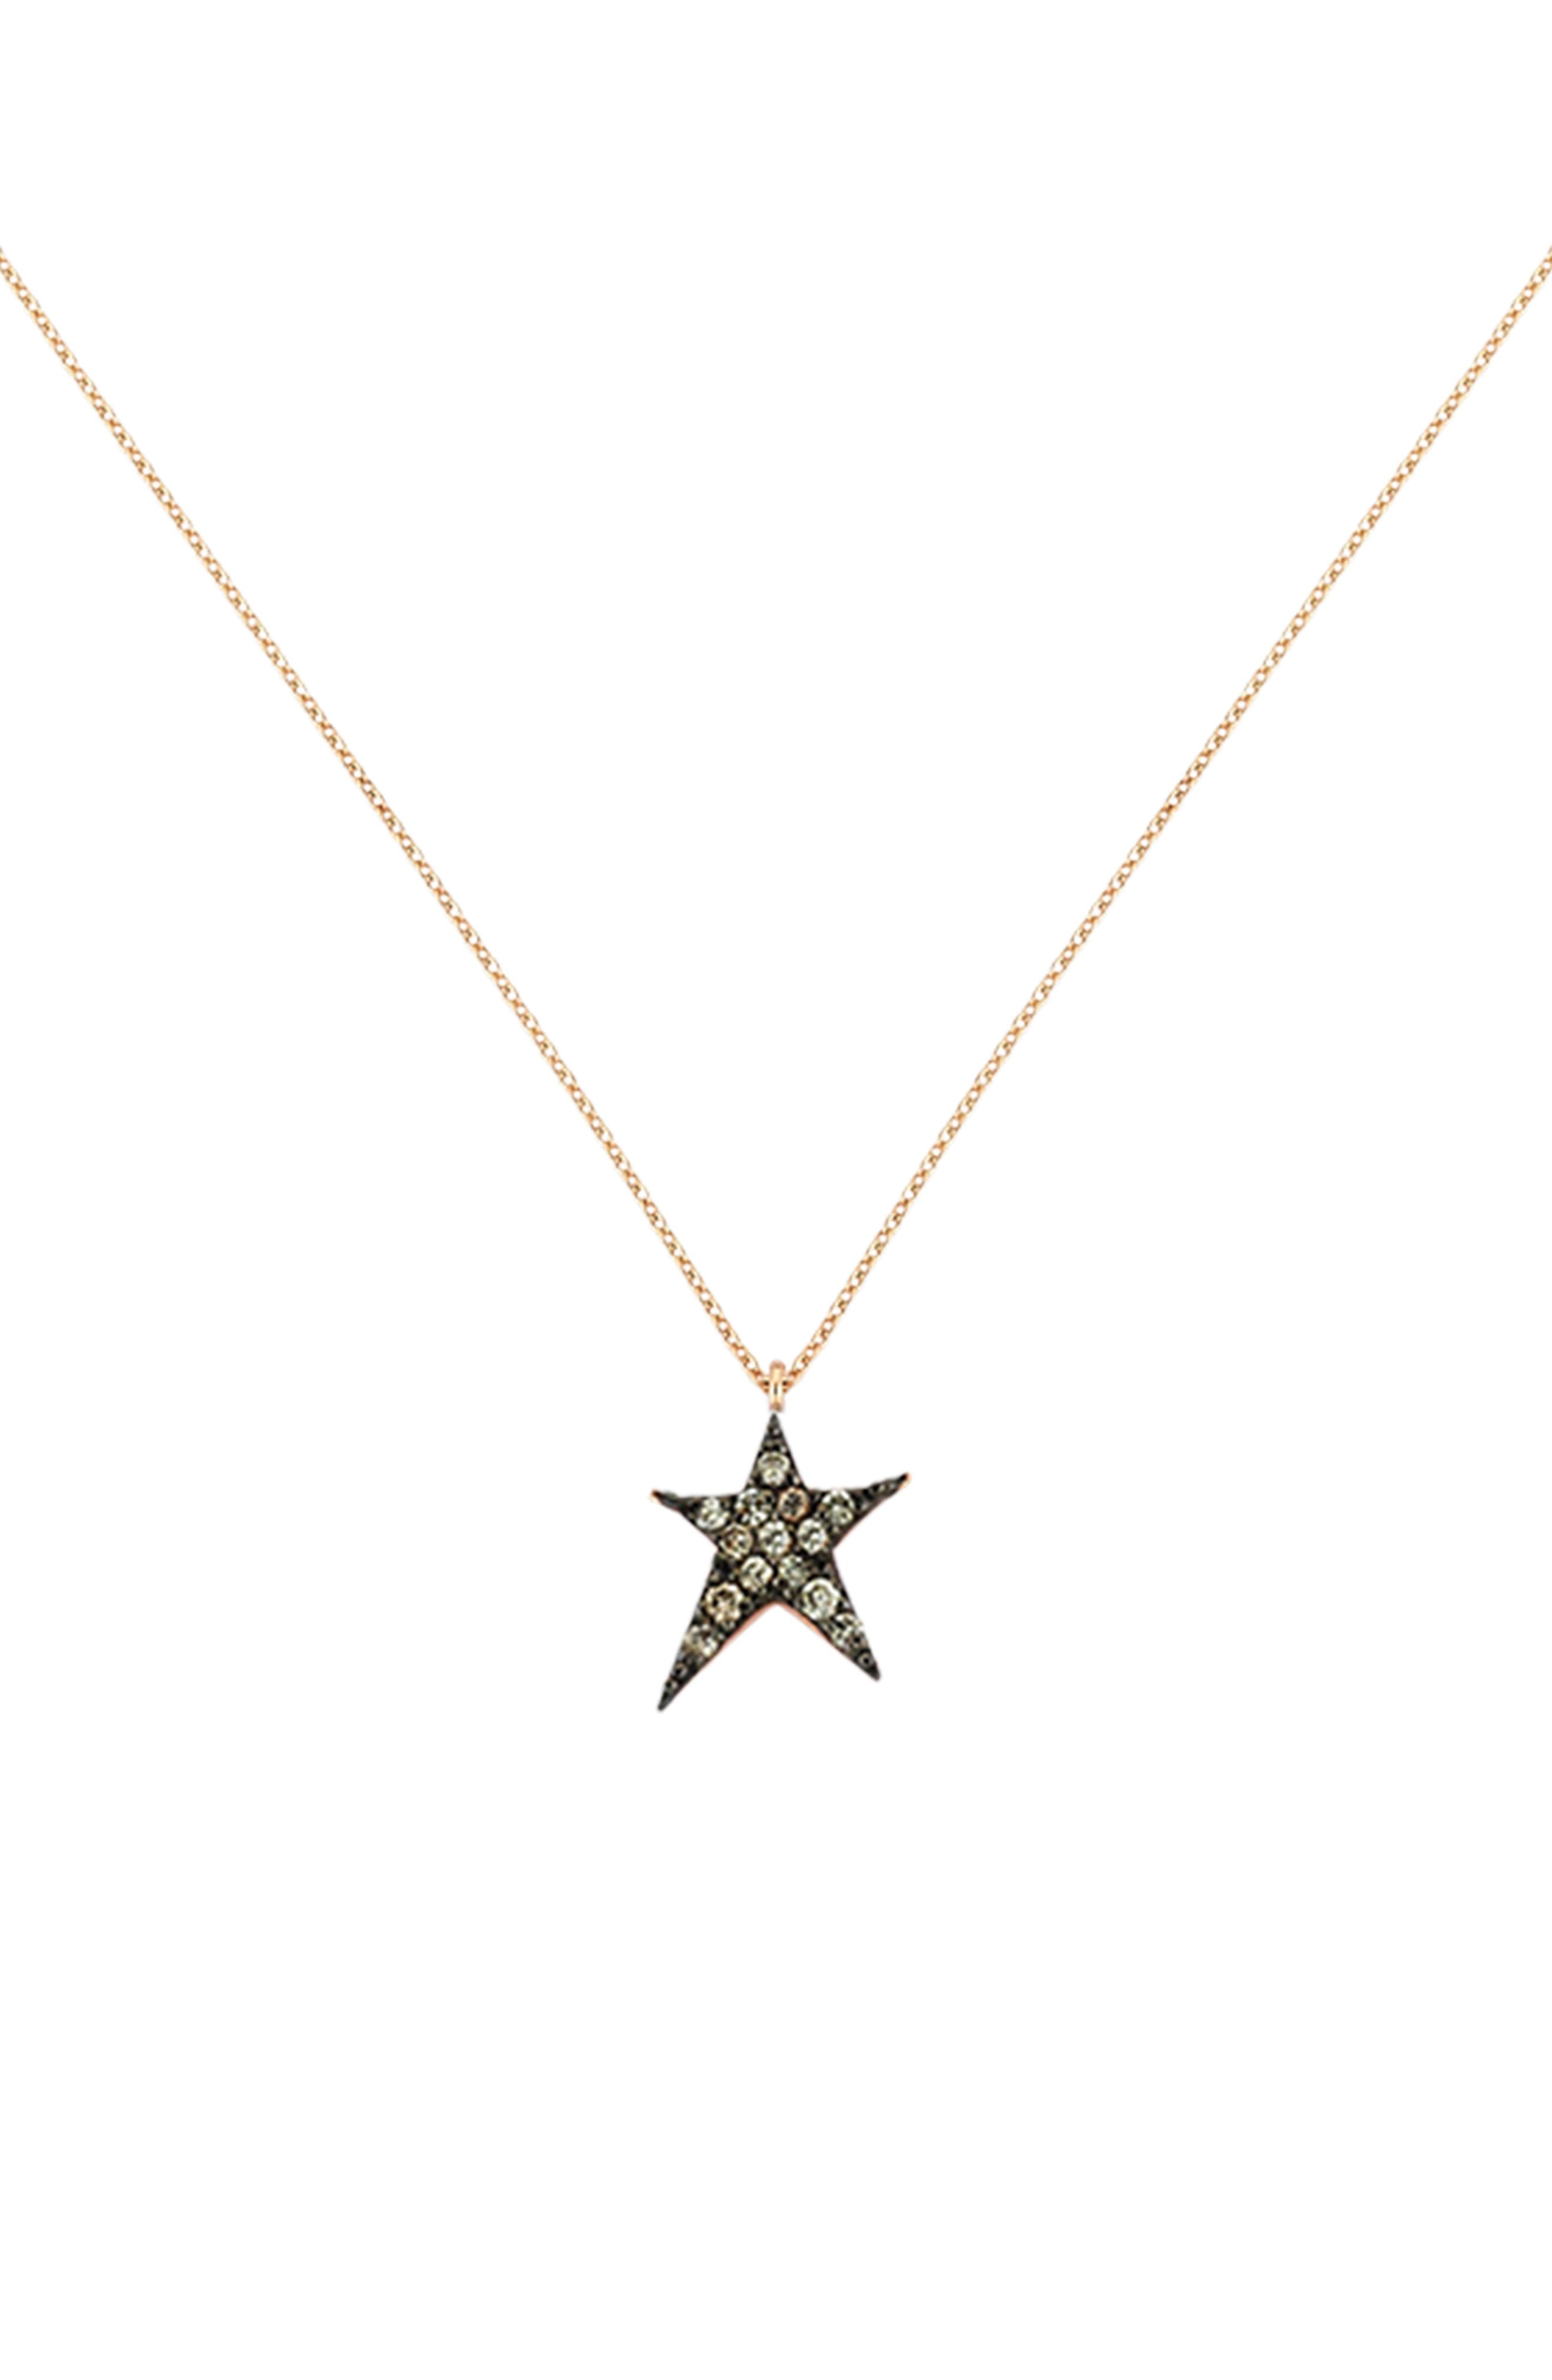 Struck Star Champagne Diamond Necklace,                         Main,                         color, ROSE GOLD